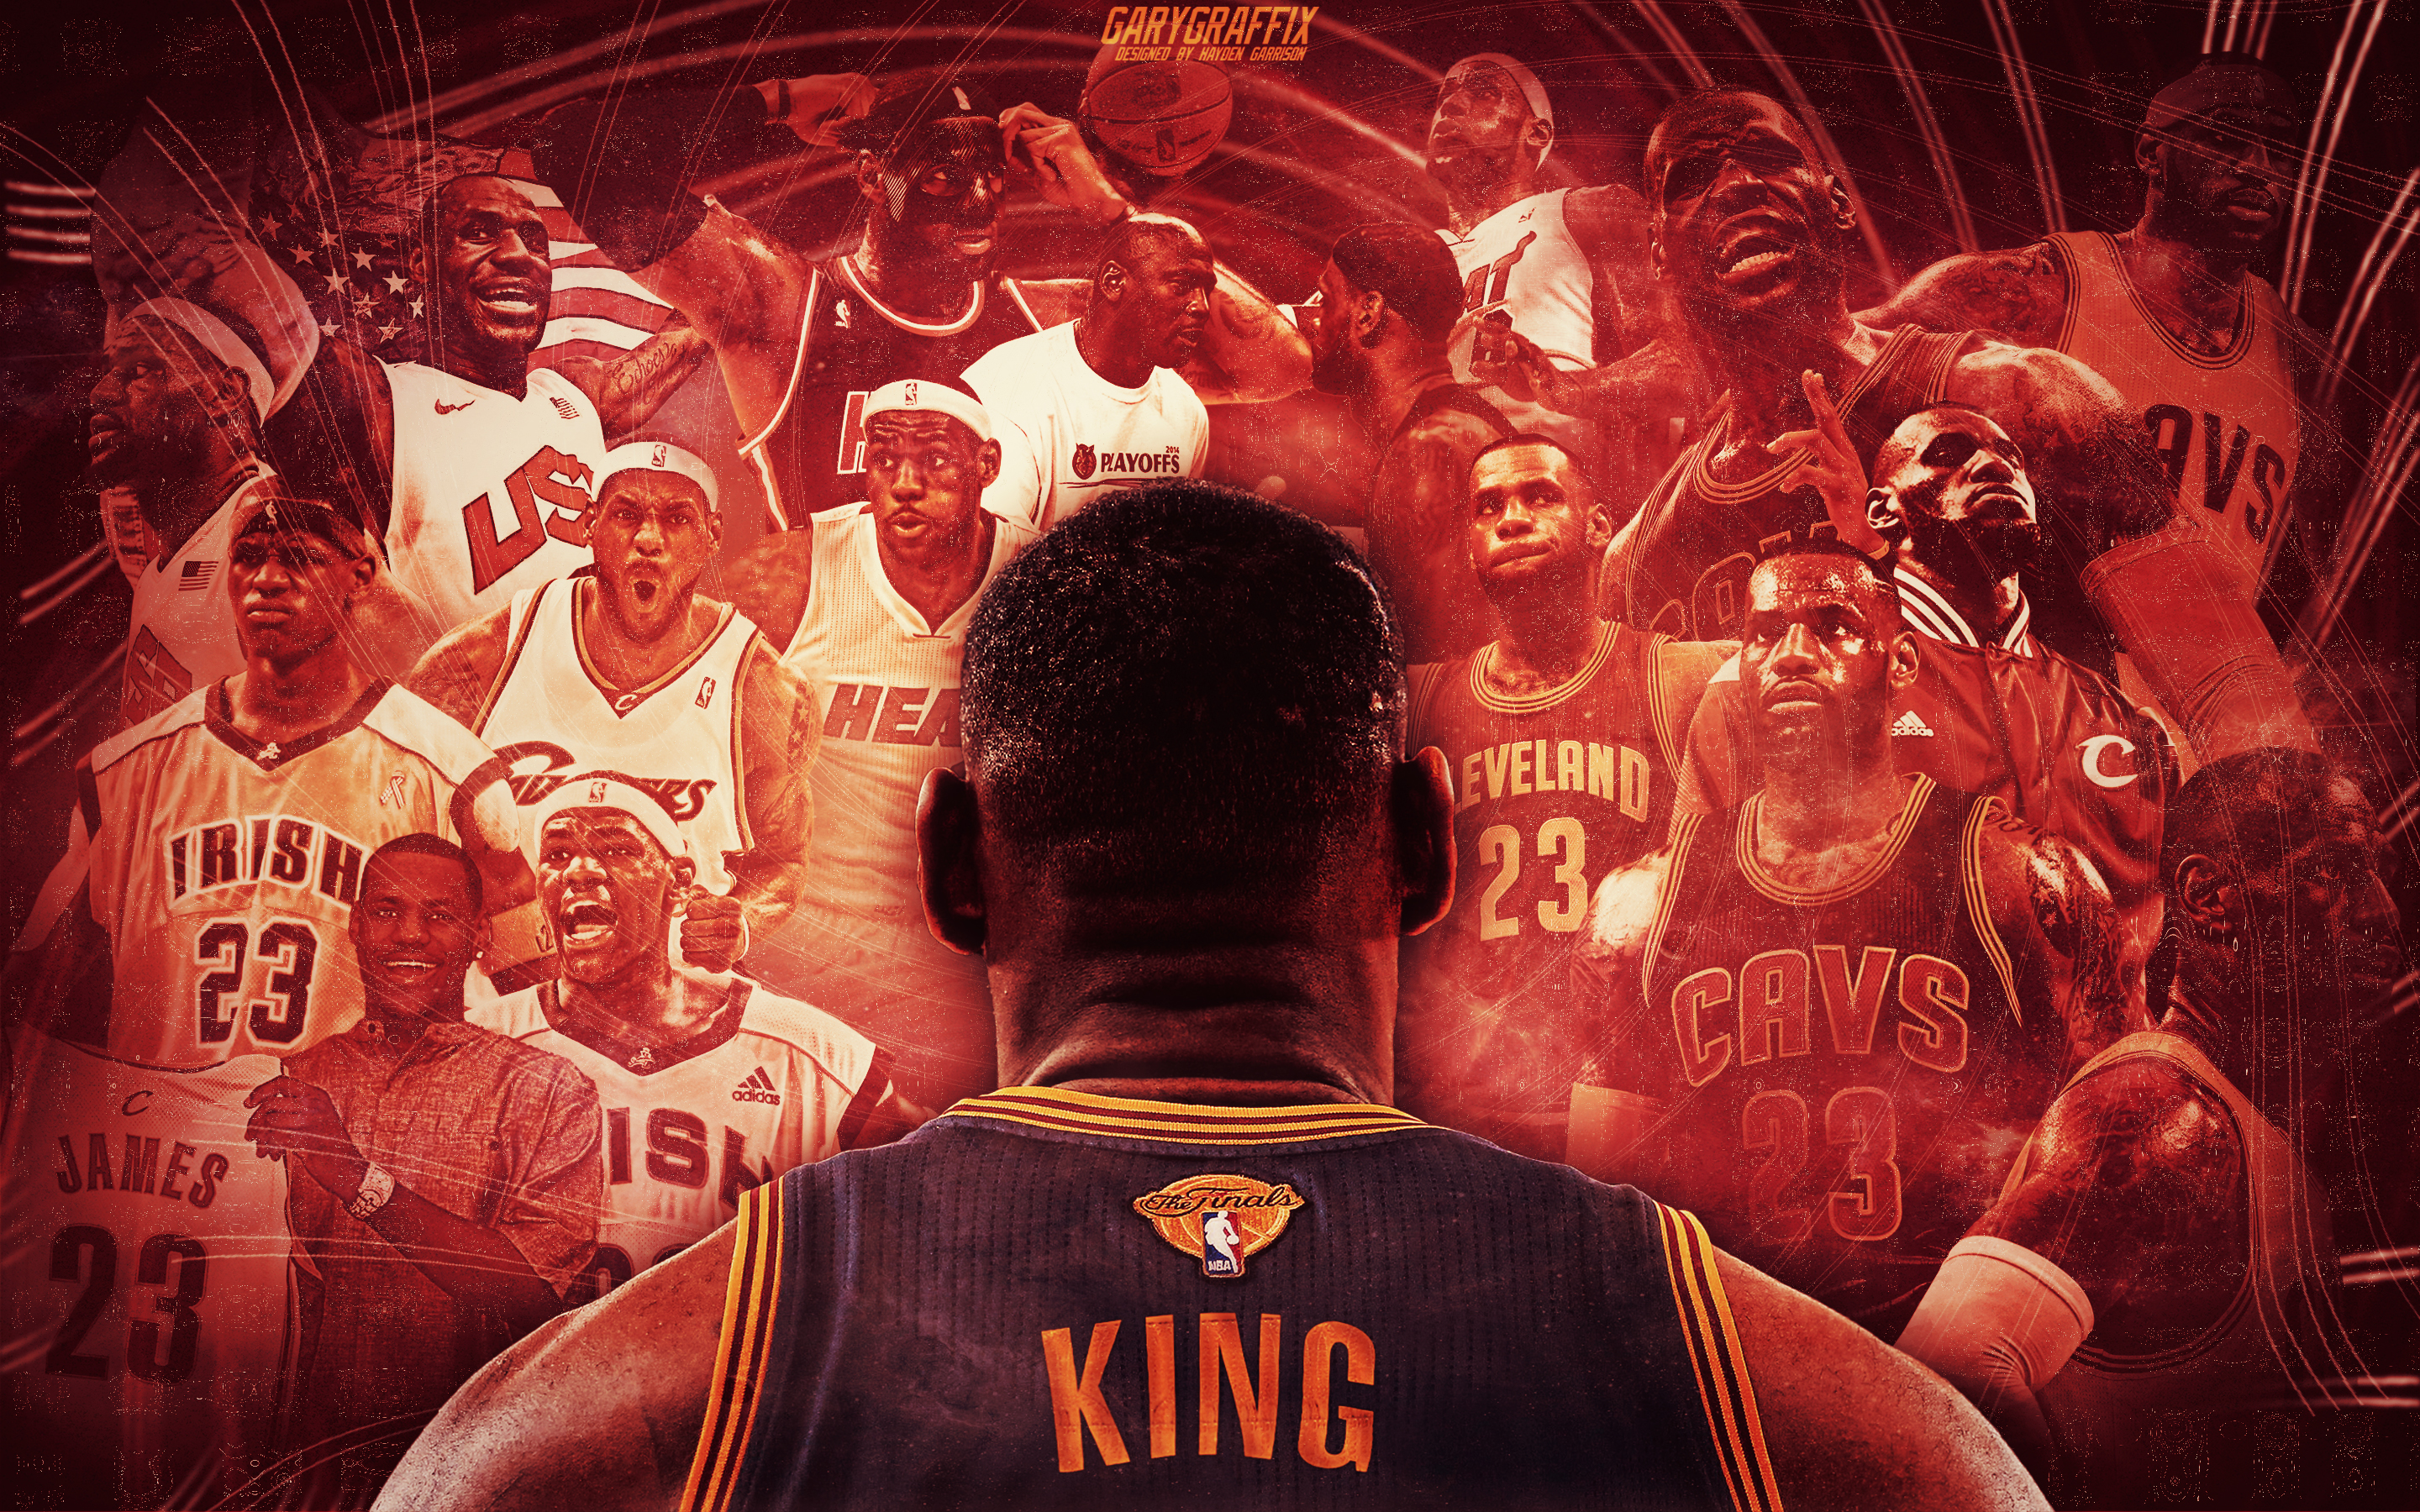 Lebron James Miami Heat Wallpaper 2015 Picserio Lebron James